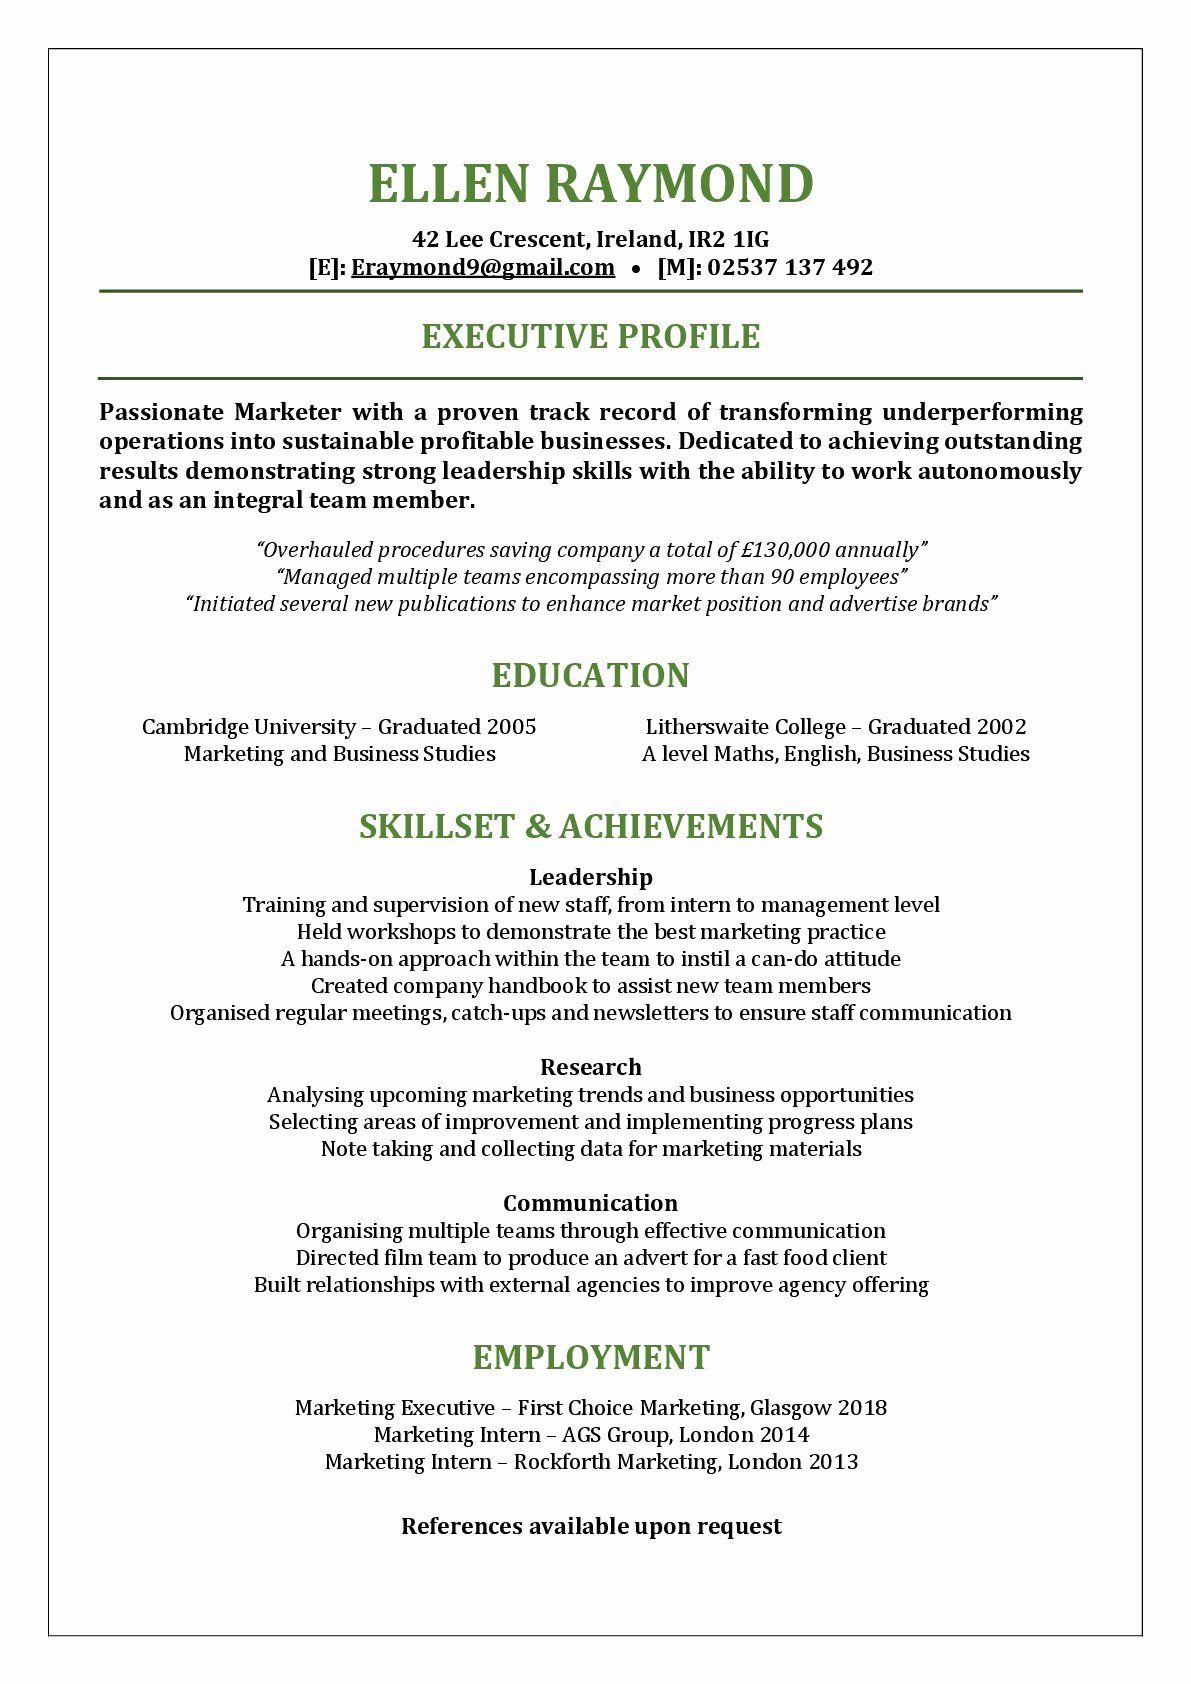 40 Free Functional Resume Template in 2020 Functional